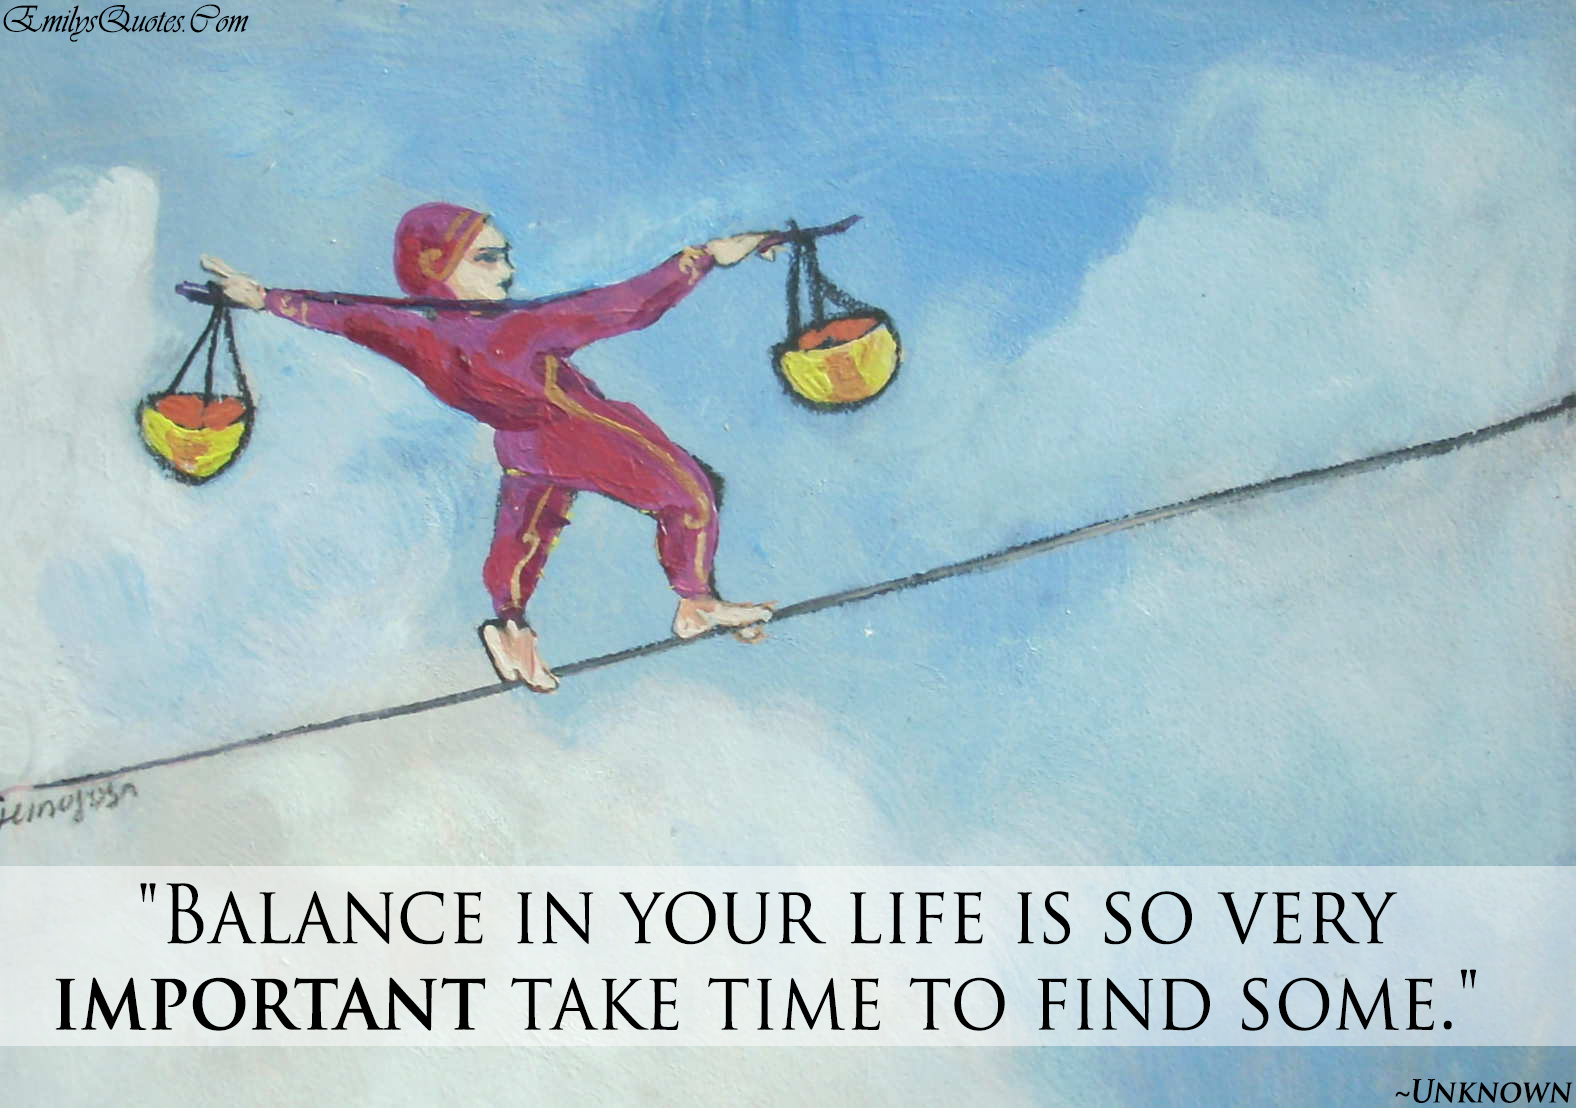 EmilysQuotes.Com - unknown, balance, life, time, advice, need